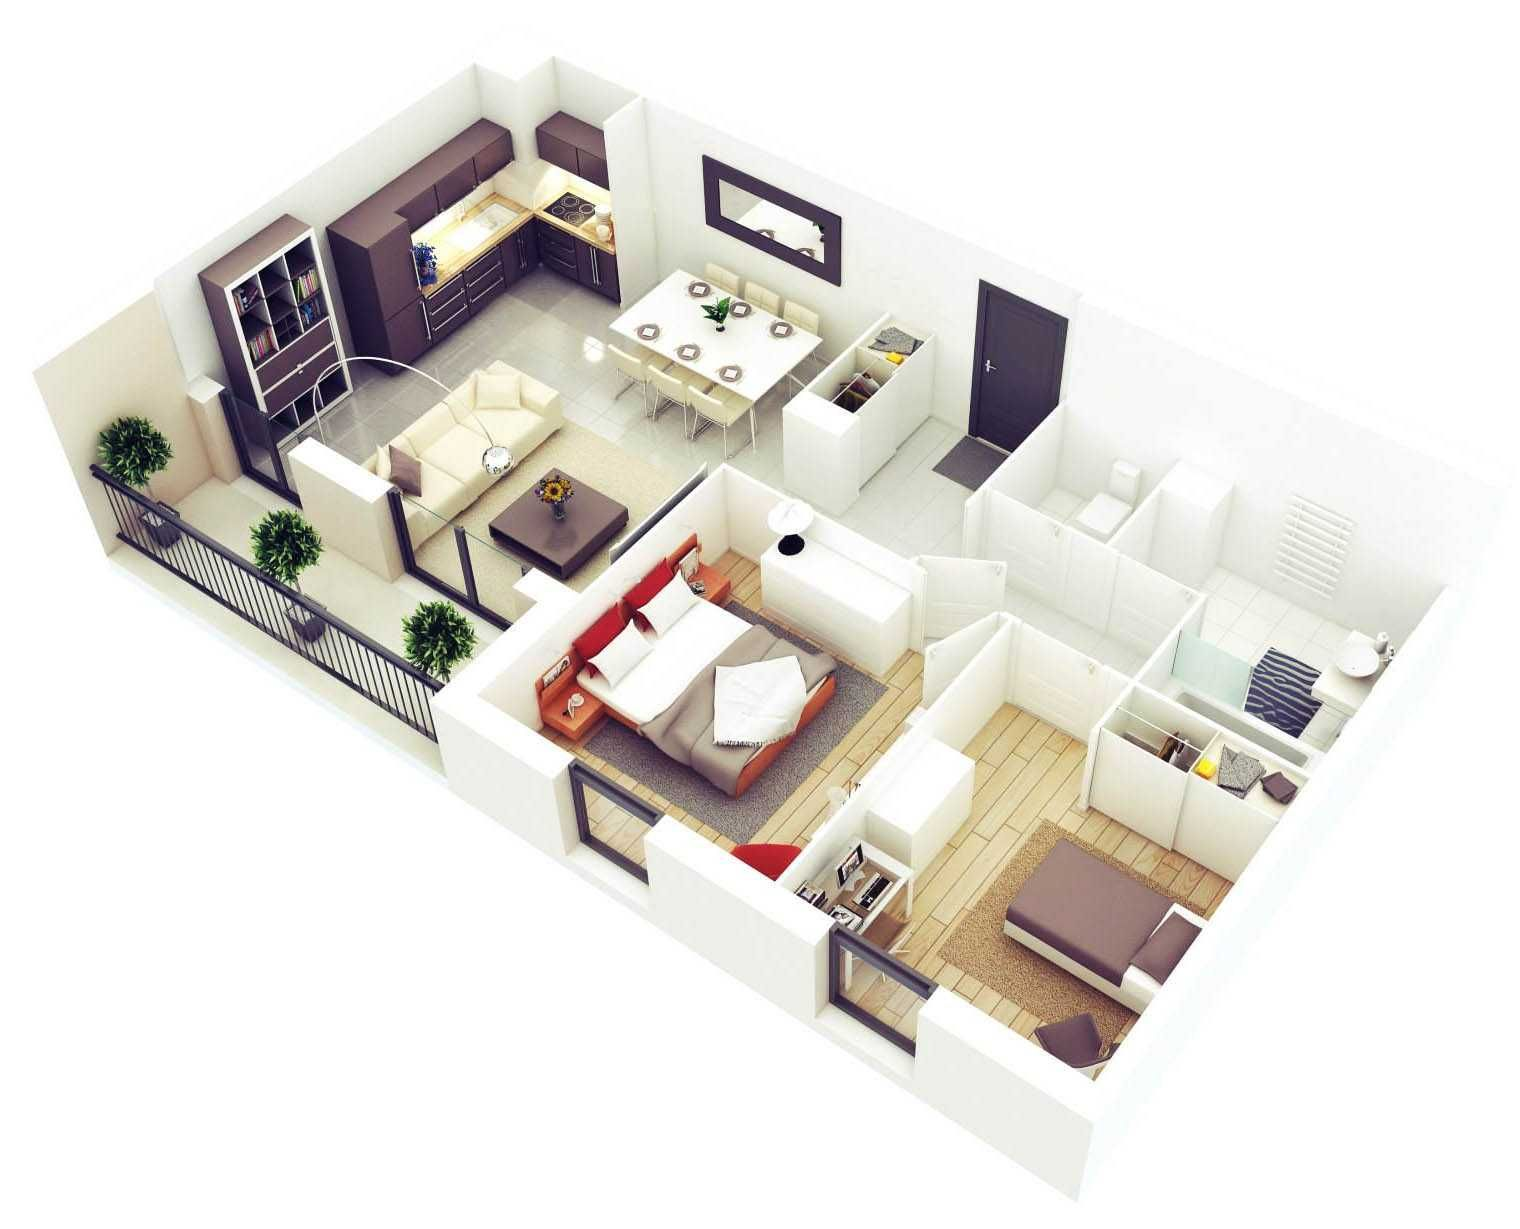 3d 2 Floor House Plan Ideas With Attractive Housekeeper Duties And 2018 Small House Design Small Apartment Plans Small House Design Plans